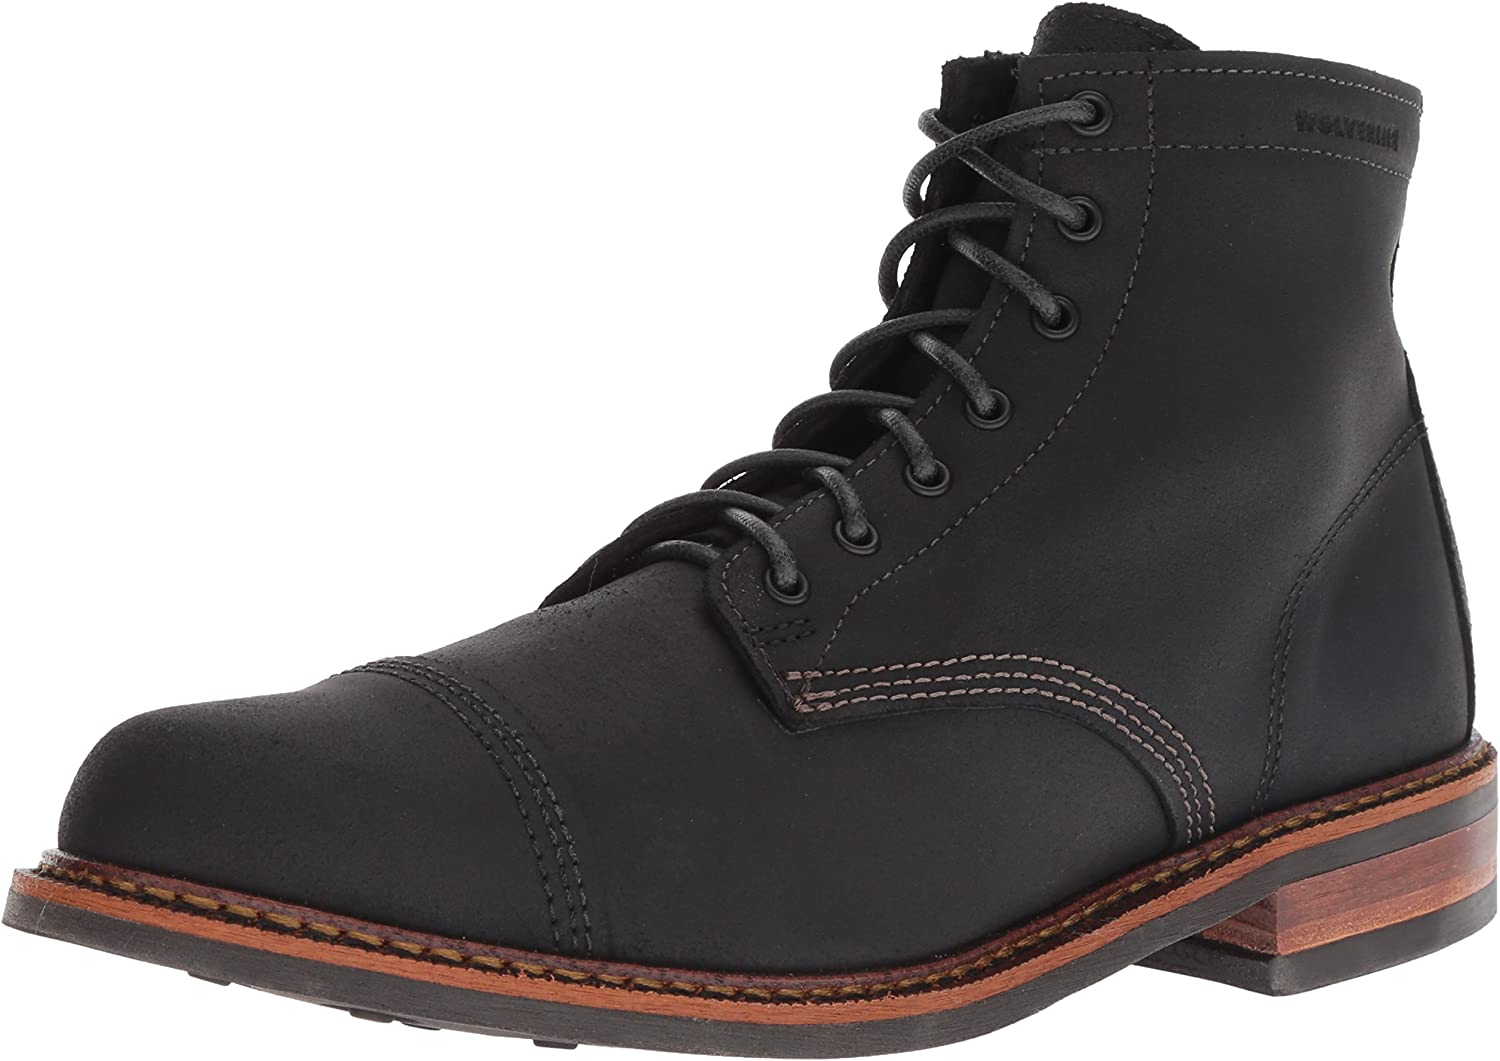 Wolverine Men's Made in USA Garrett Fashion Boot